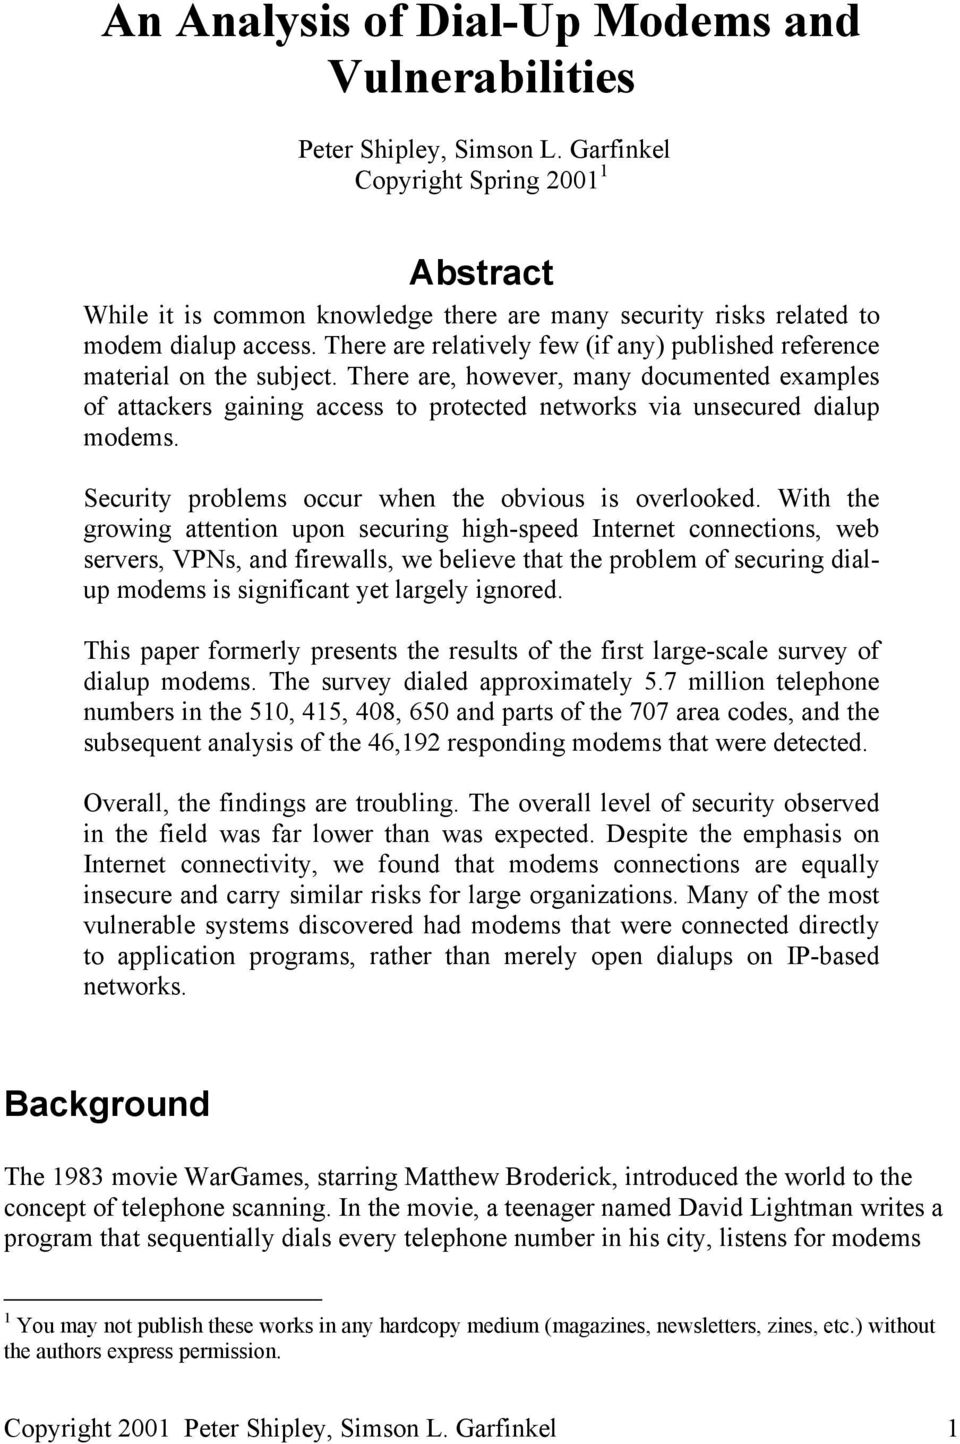 An Analysis of Dial-Up Modems and Vulnerabilities - PDF